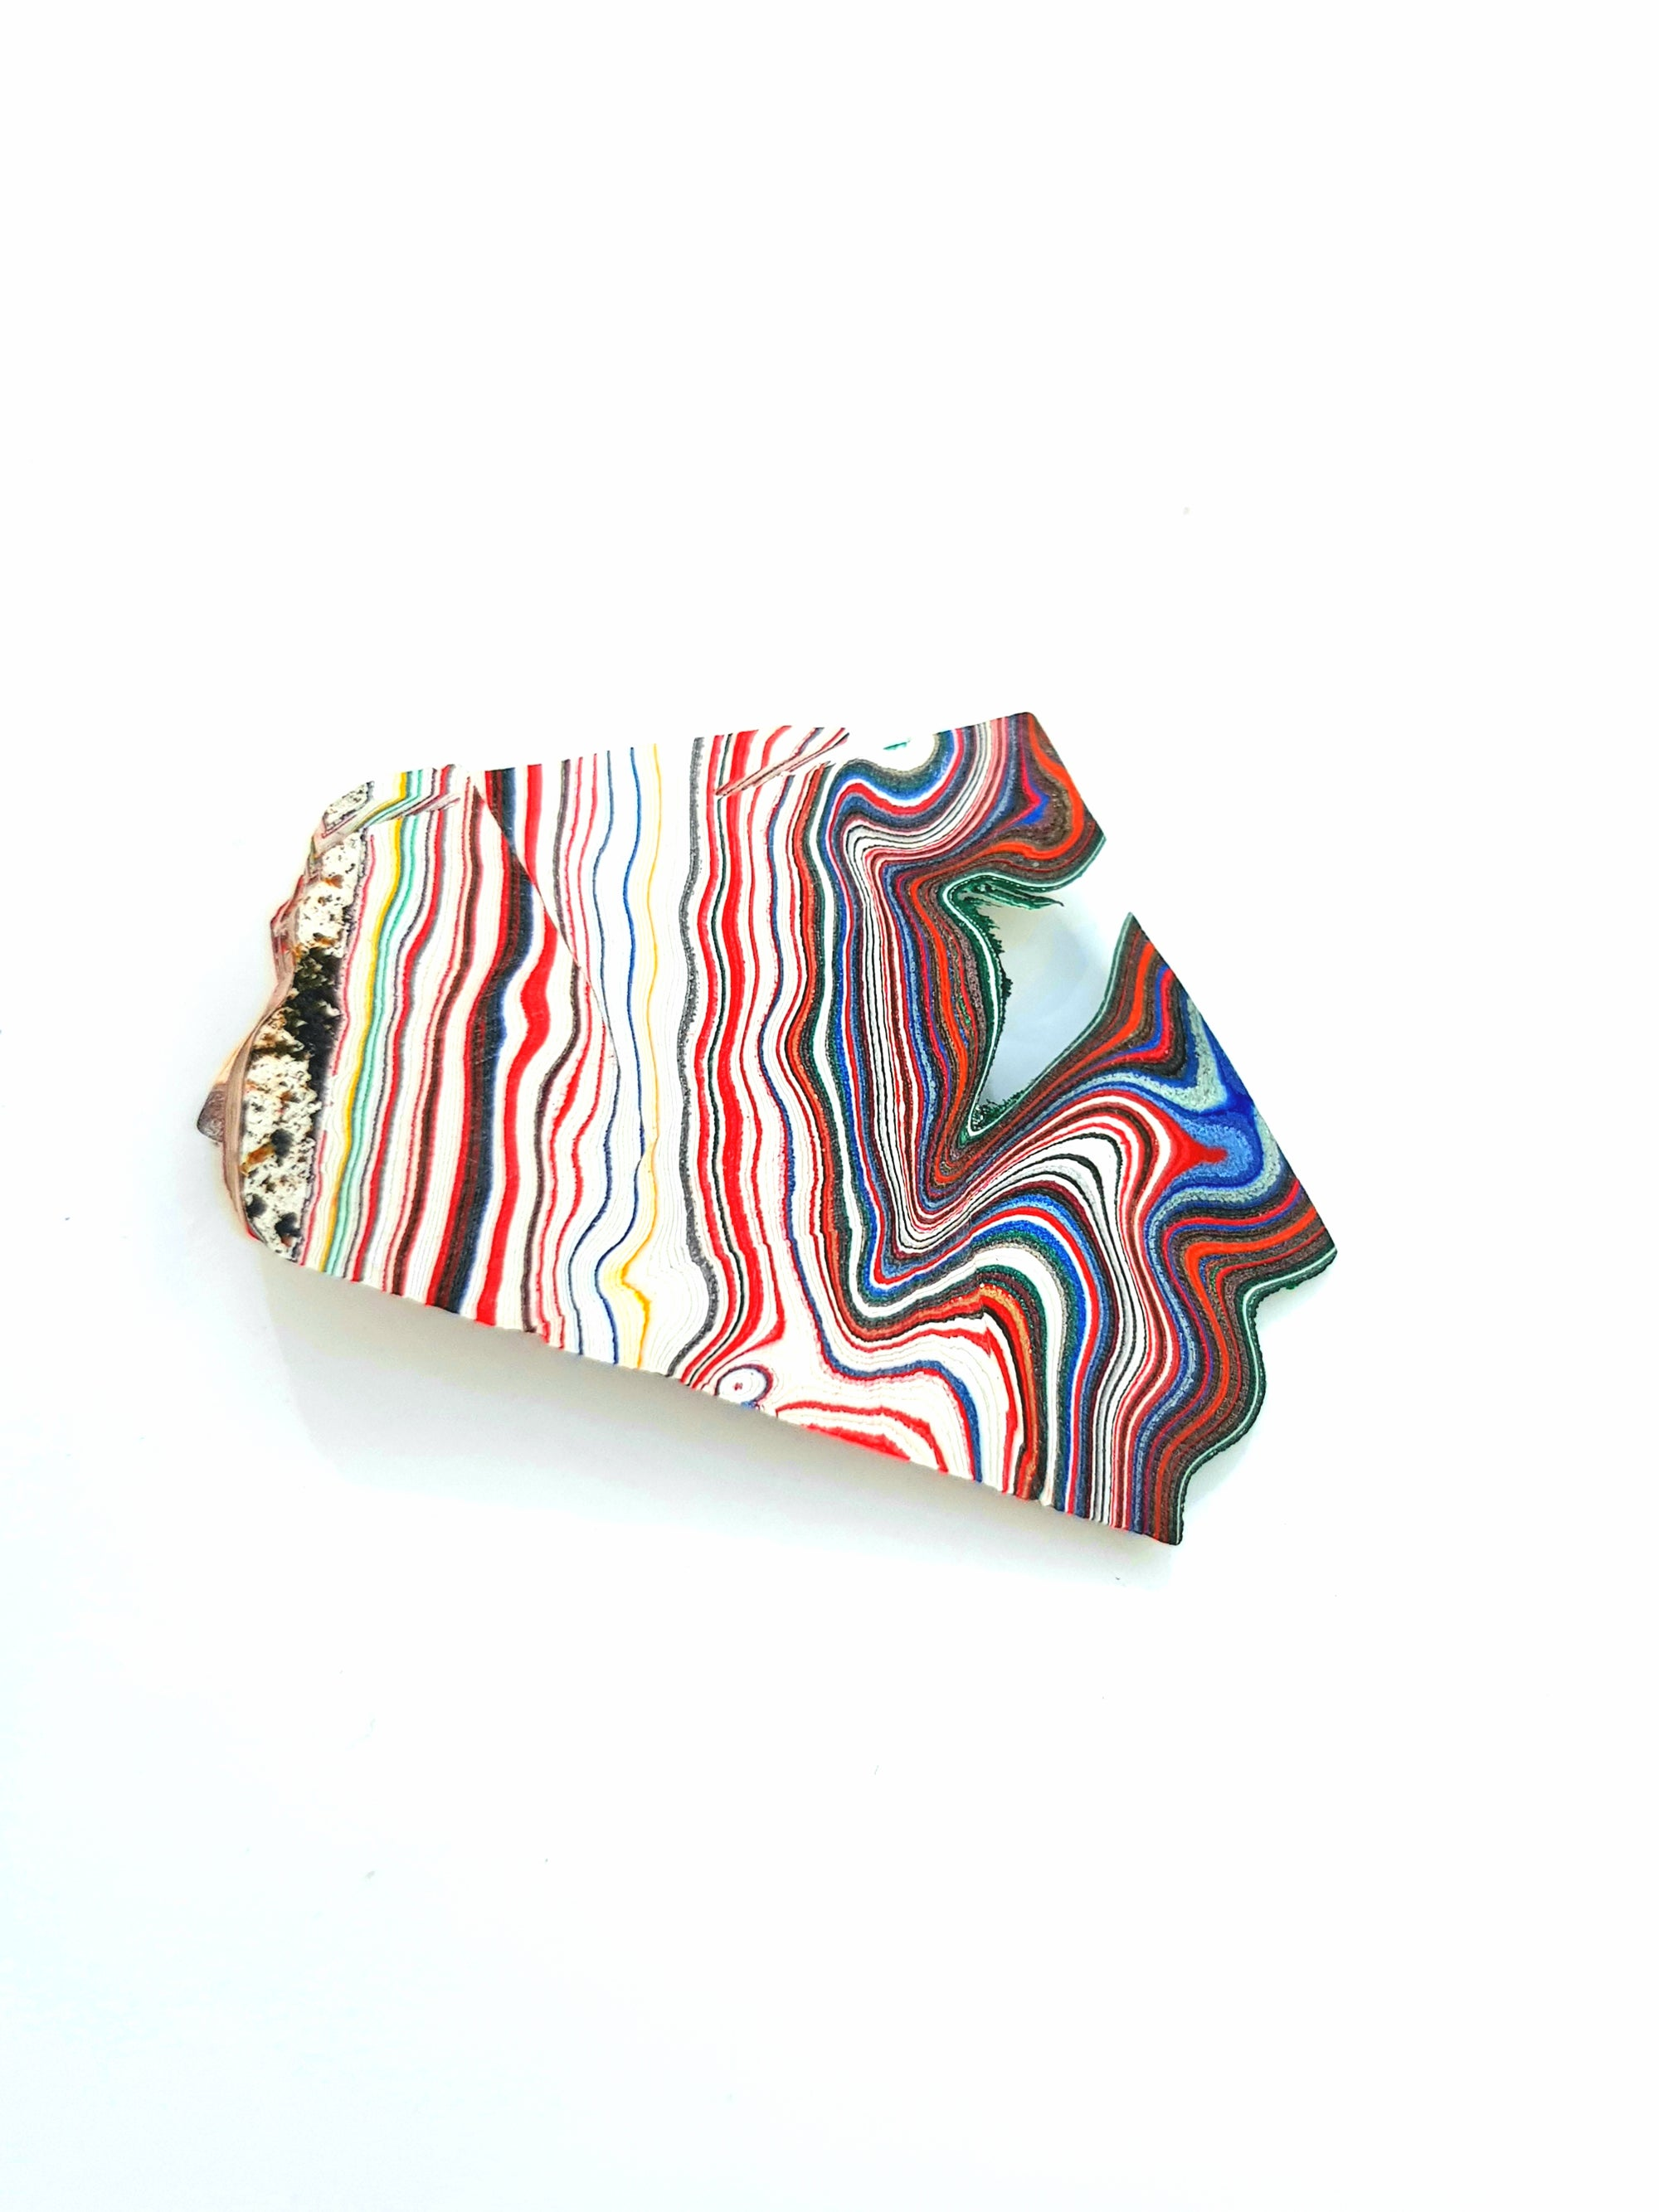 Raw fordite - The Science of Magic